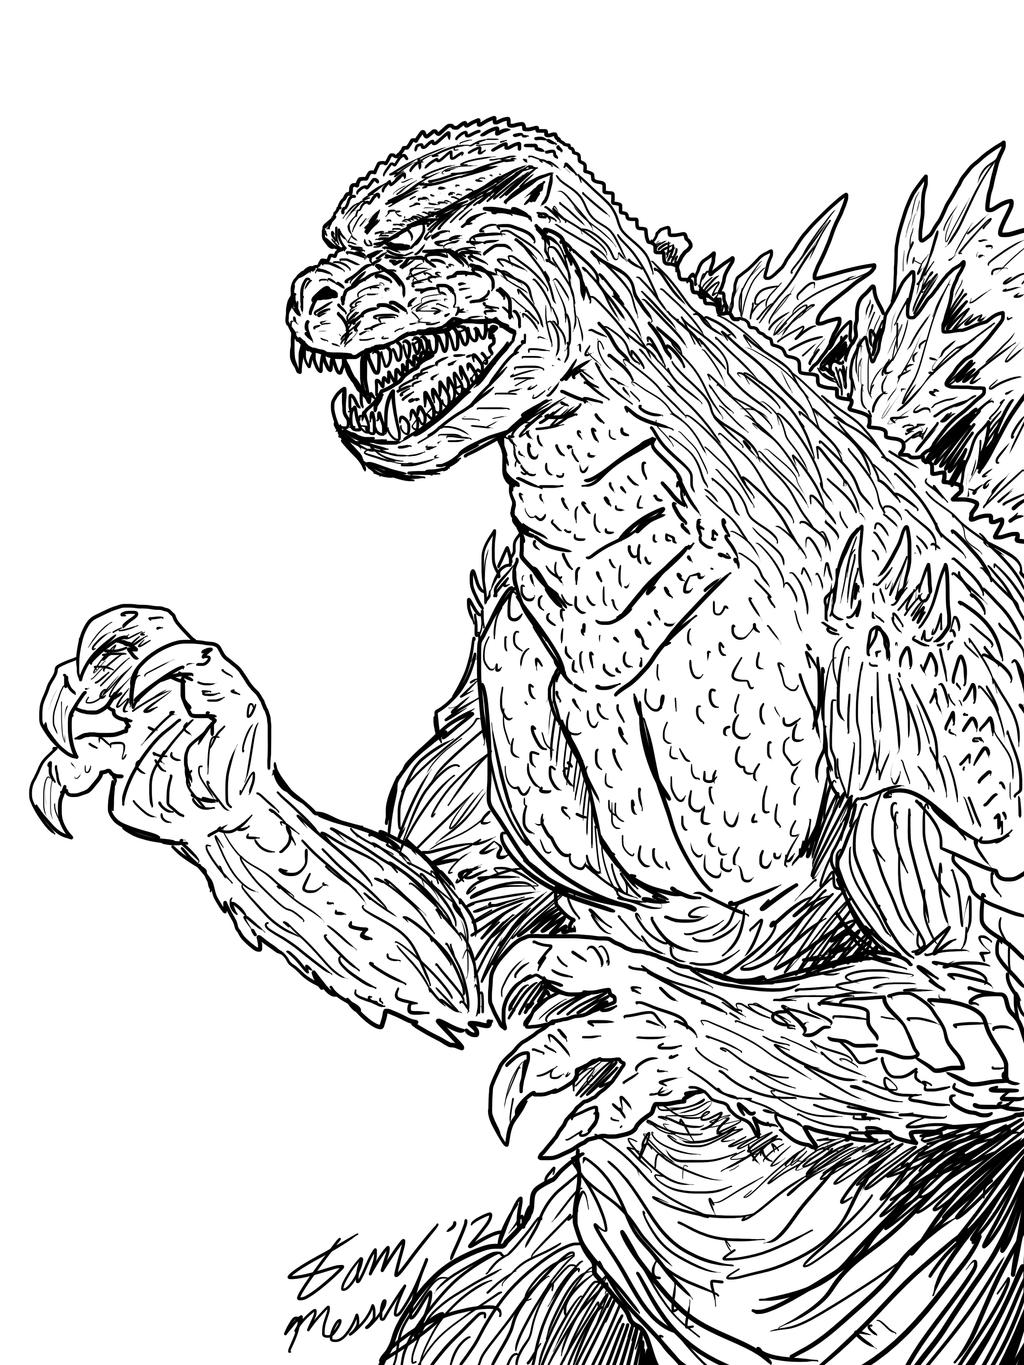 Mean Godzilla Concept by kaijukid